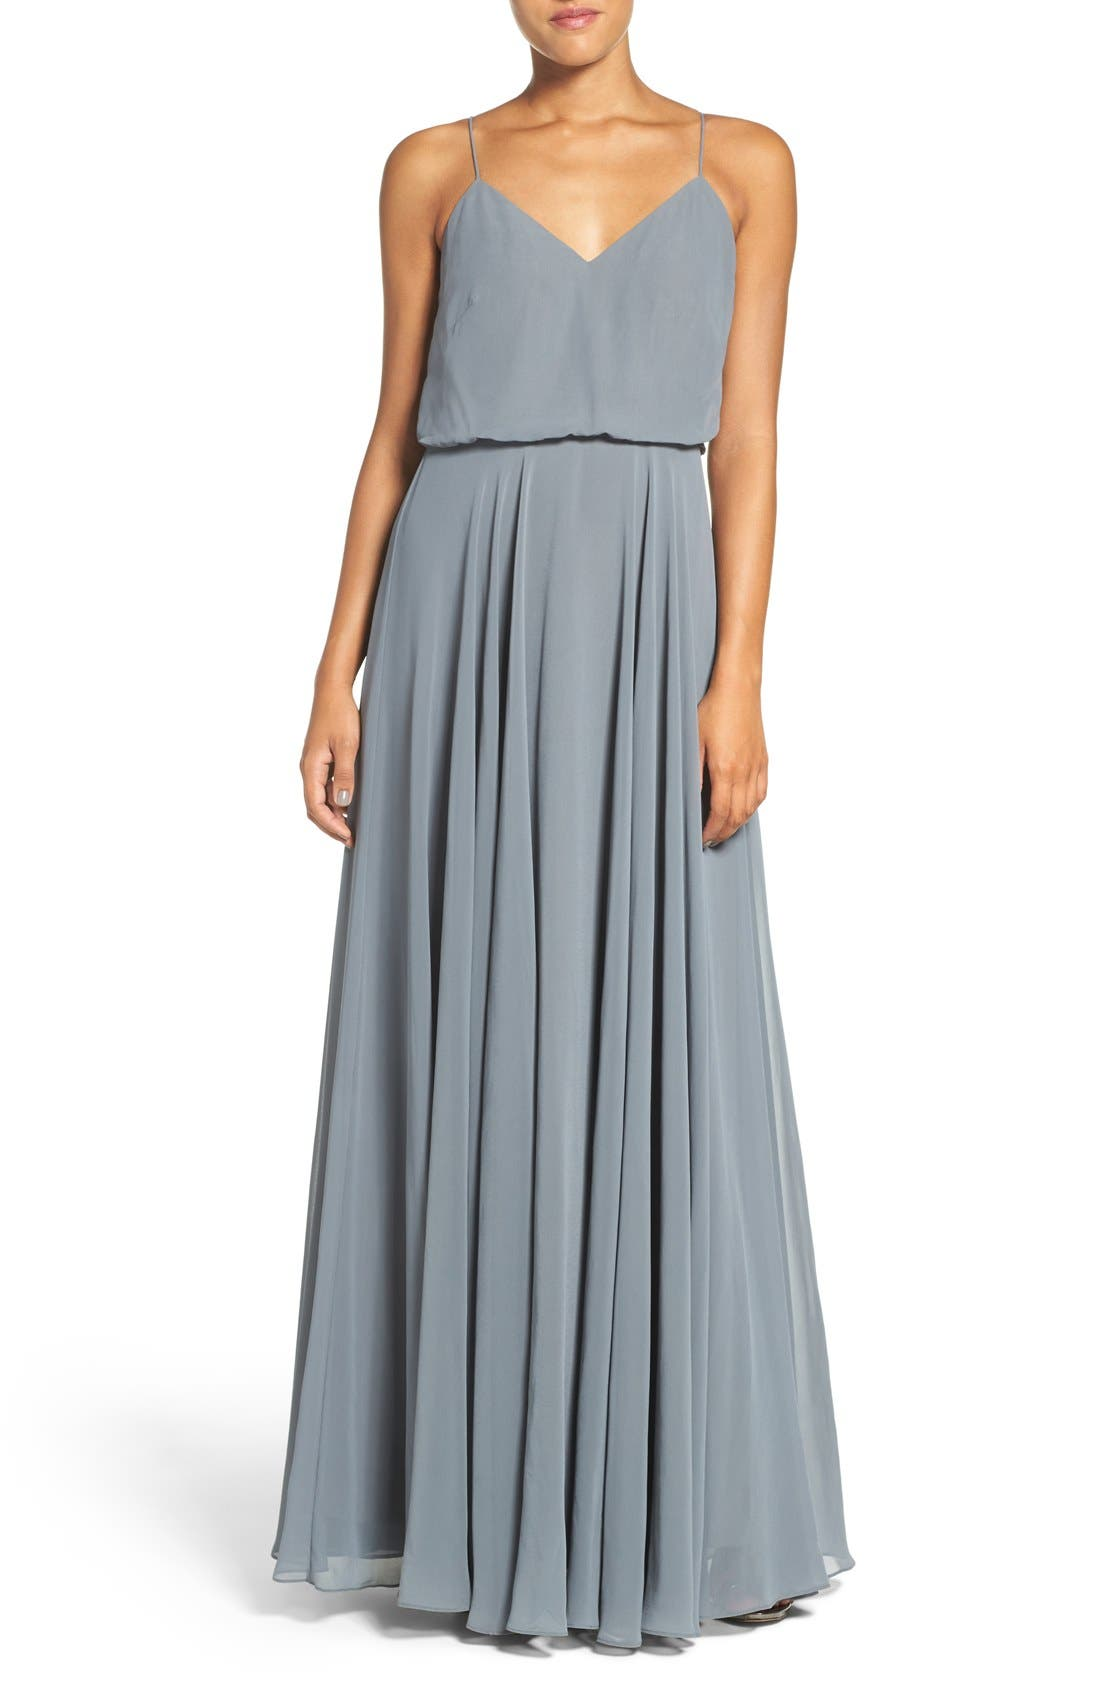 Bridesmaid & Wedding Party Dresses | Nordstrom